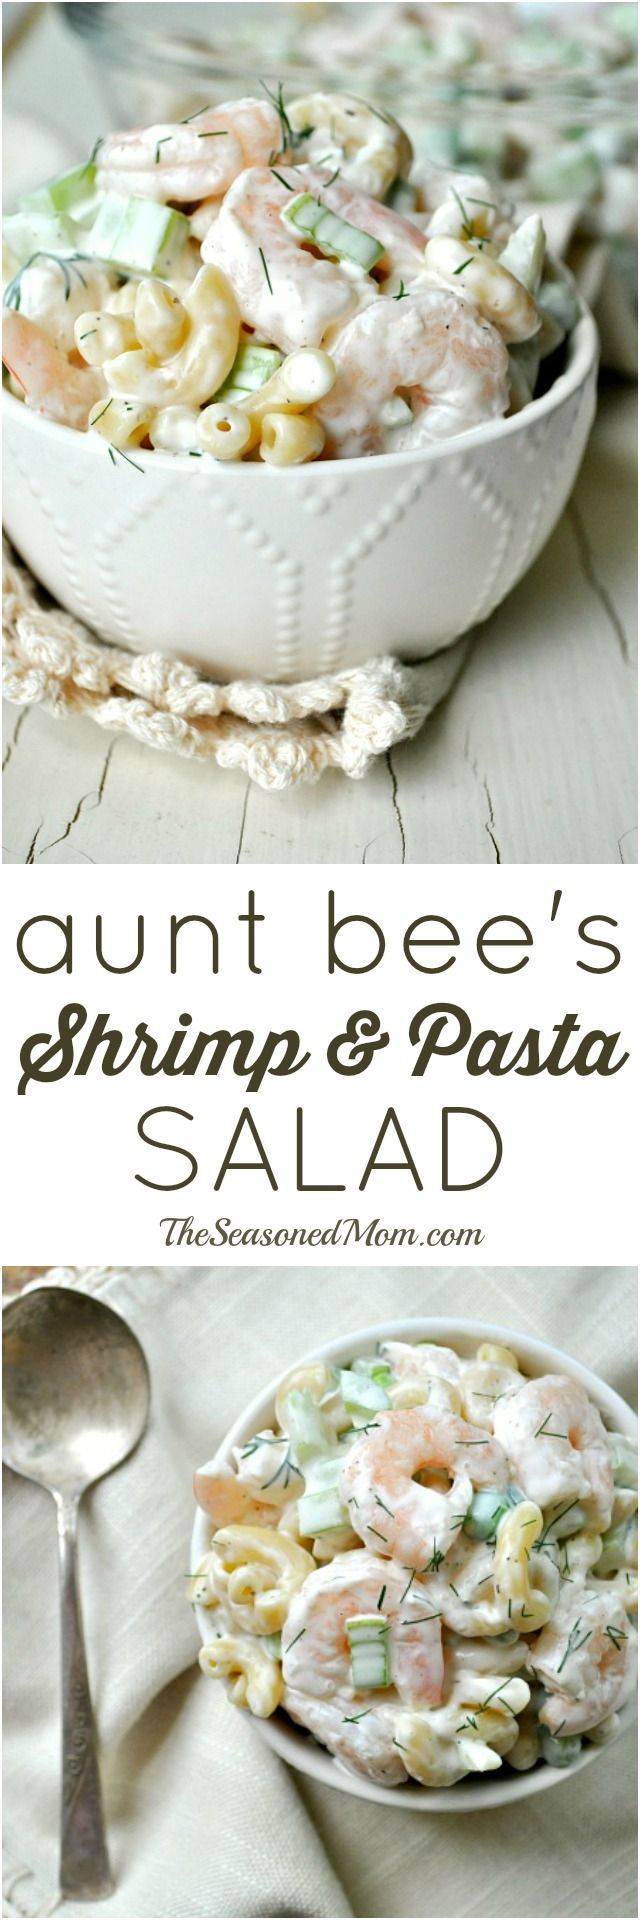 Full of simple and fresh ingredients, Aunt Bees Shrimp and Pasta Salad has been a family-favorite for decades! Its the perfect side dish for your next cookout, an easy option for a weeknight dinner, or a refreshing make-ahead lunch option.